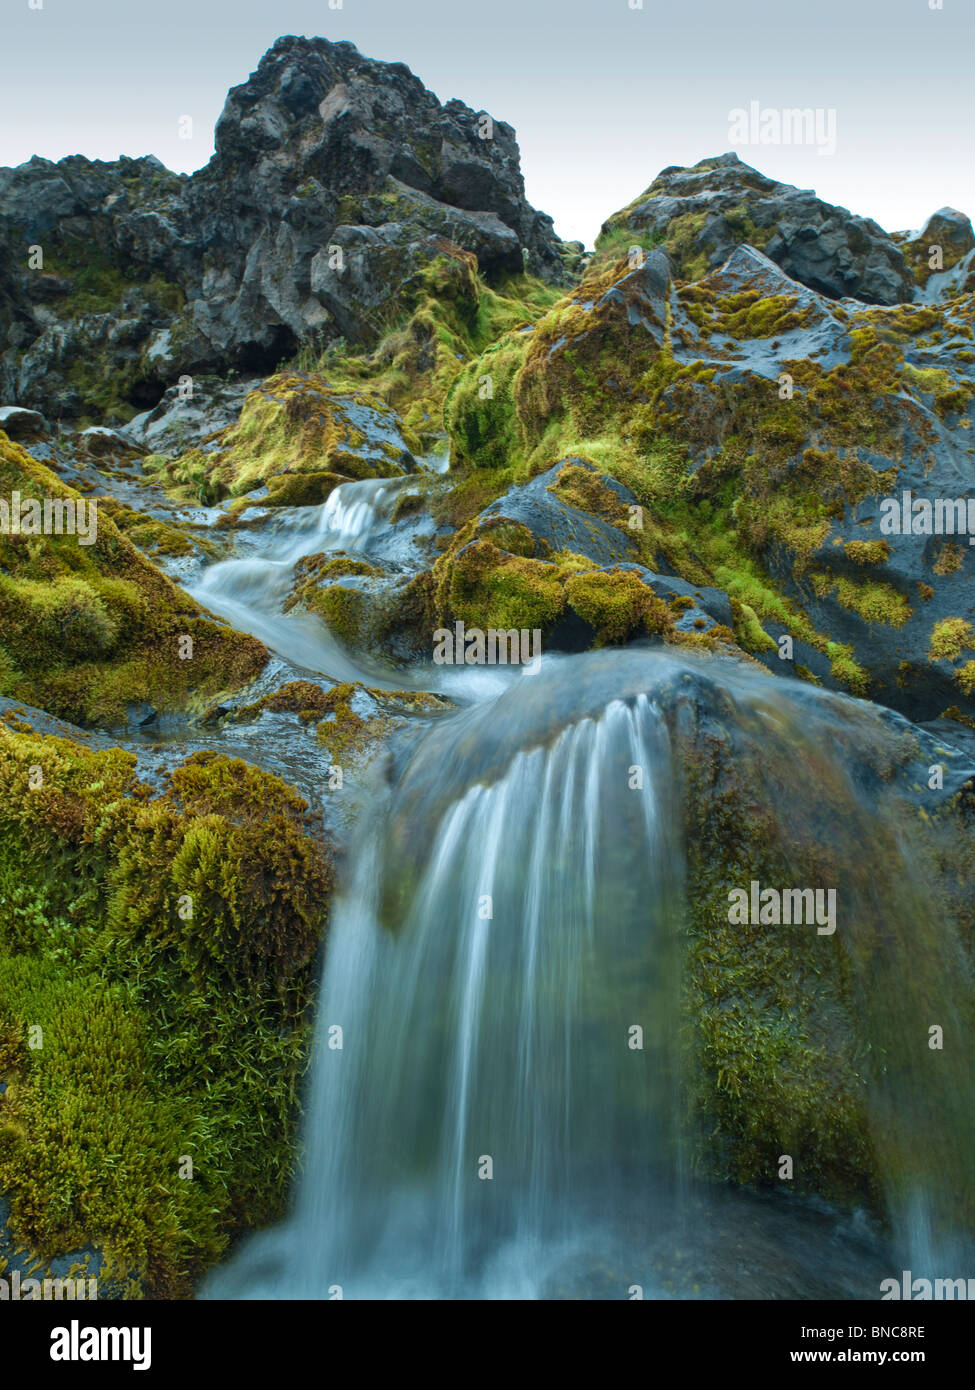 Creek among moss covered lava in Iceland's Central Highlands, Iceland - Stock Image